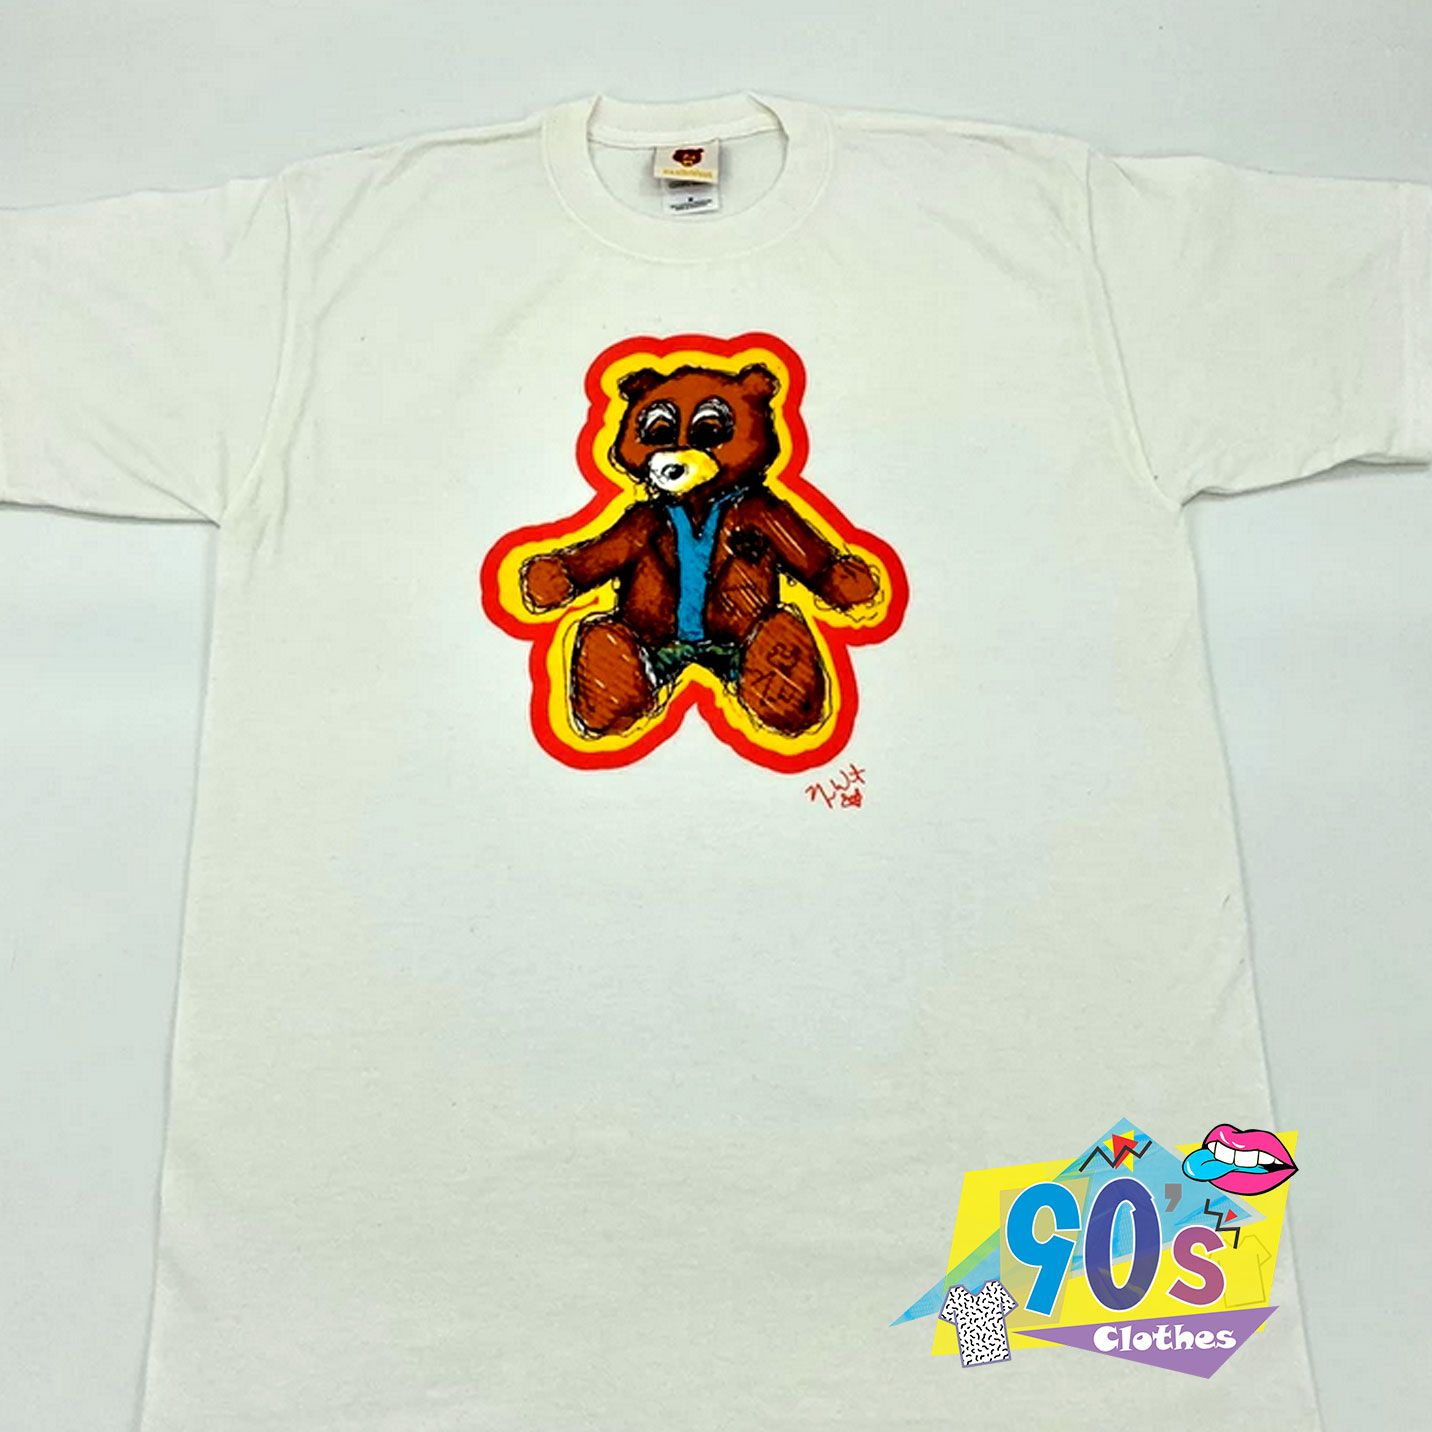 Vintage Kanye West Dropout Bear Sketch T Shirt 90sclothes Com In 2020 90s Shirt Vintage Bear Sketch Shirt Designs